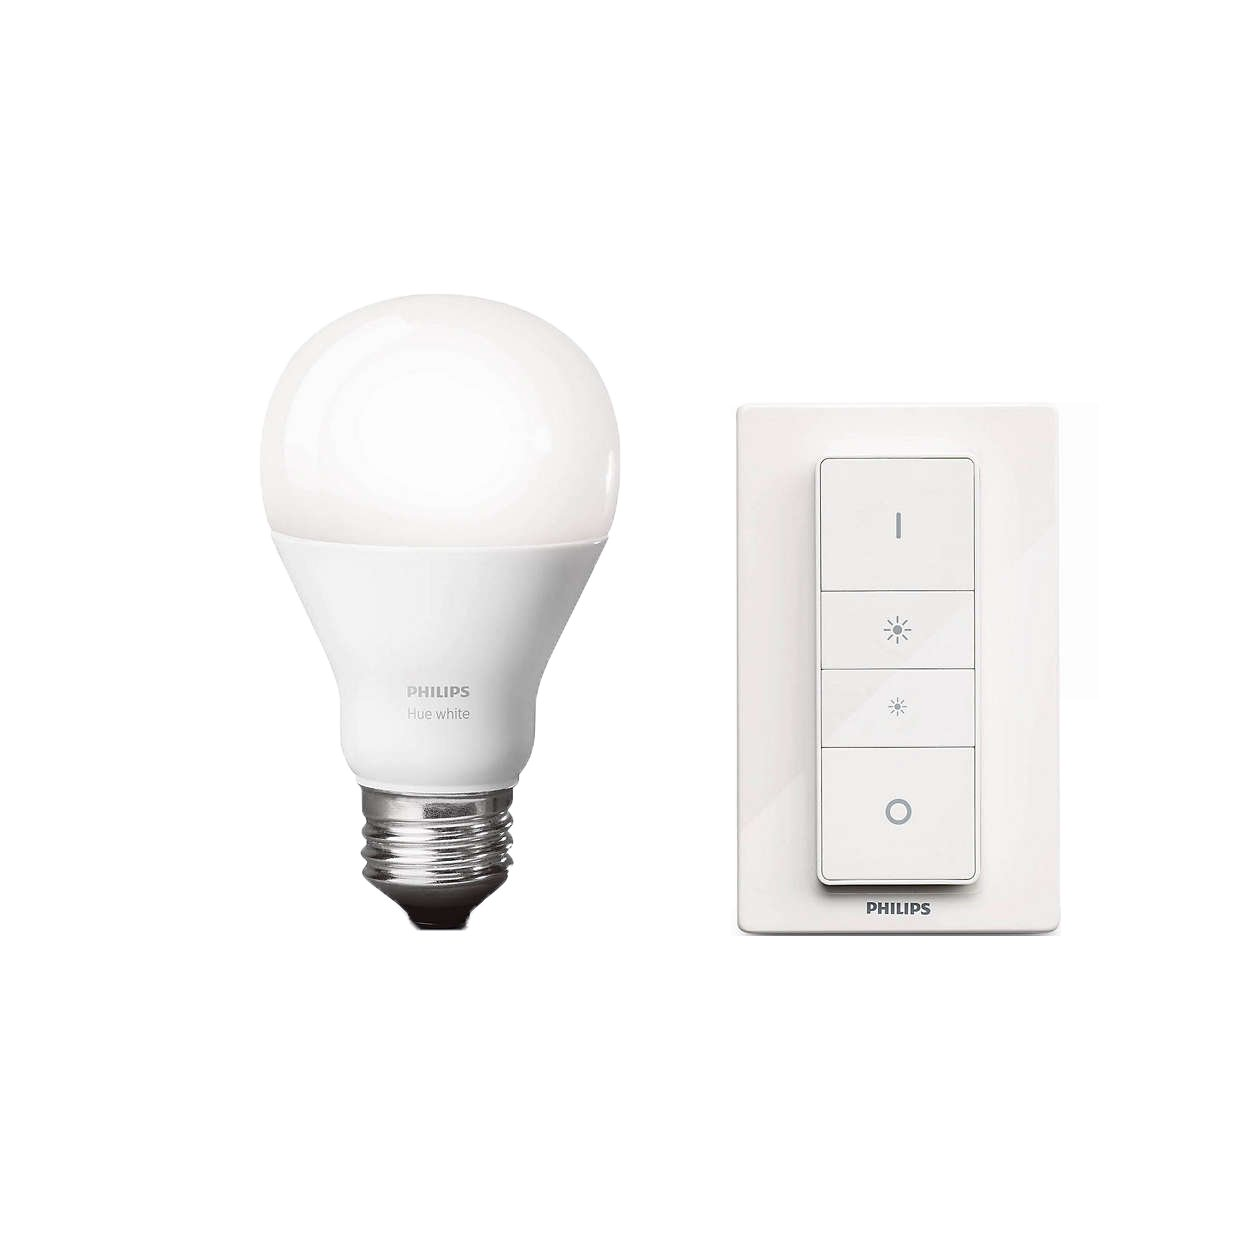 philips hue wireless dimming kit online hot deals gottadeal forums. Black Bedroom Furniture Sets. Home Design Ideas